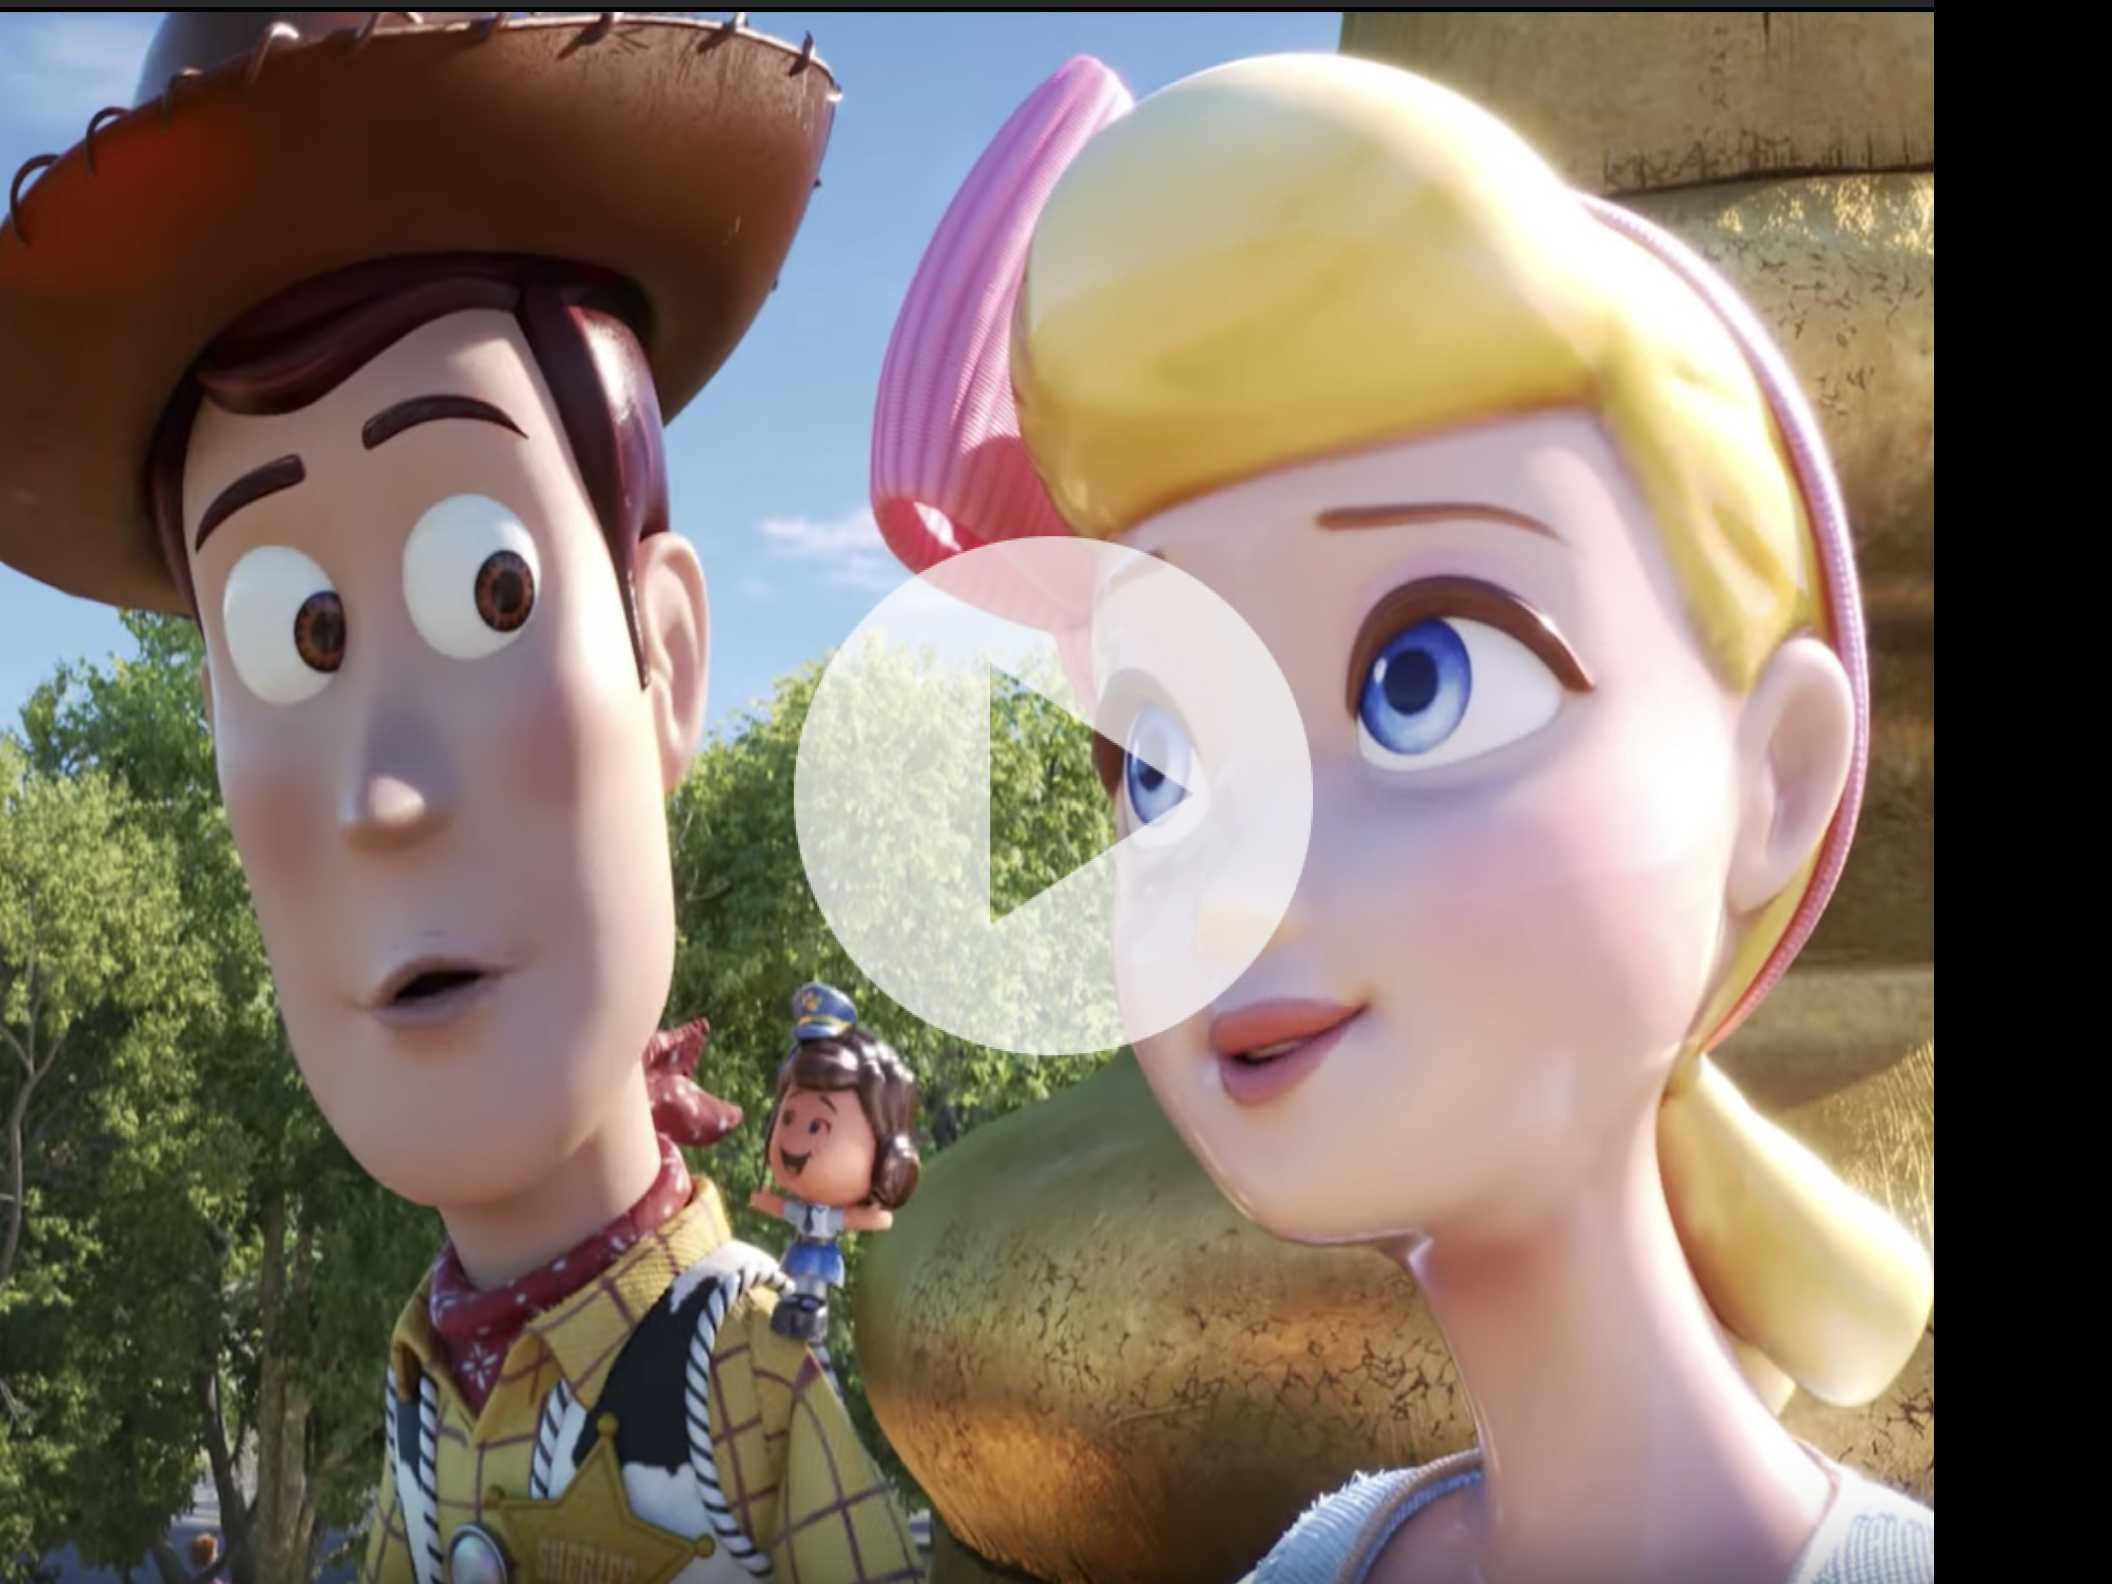 Watch: 'Toy Story 4' Gets Official Trailer